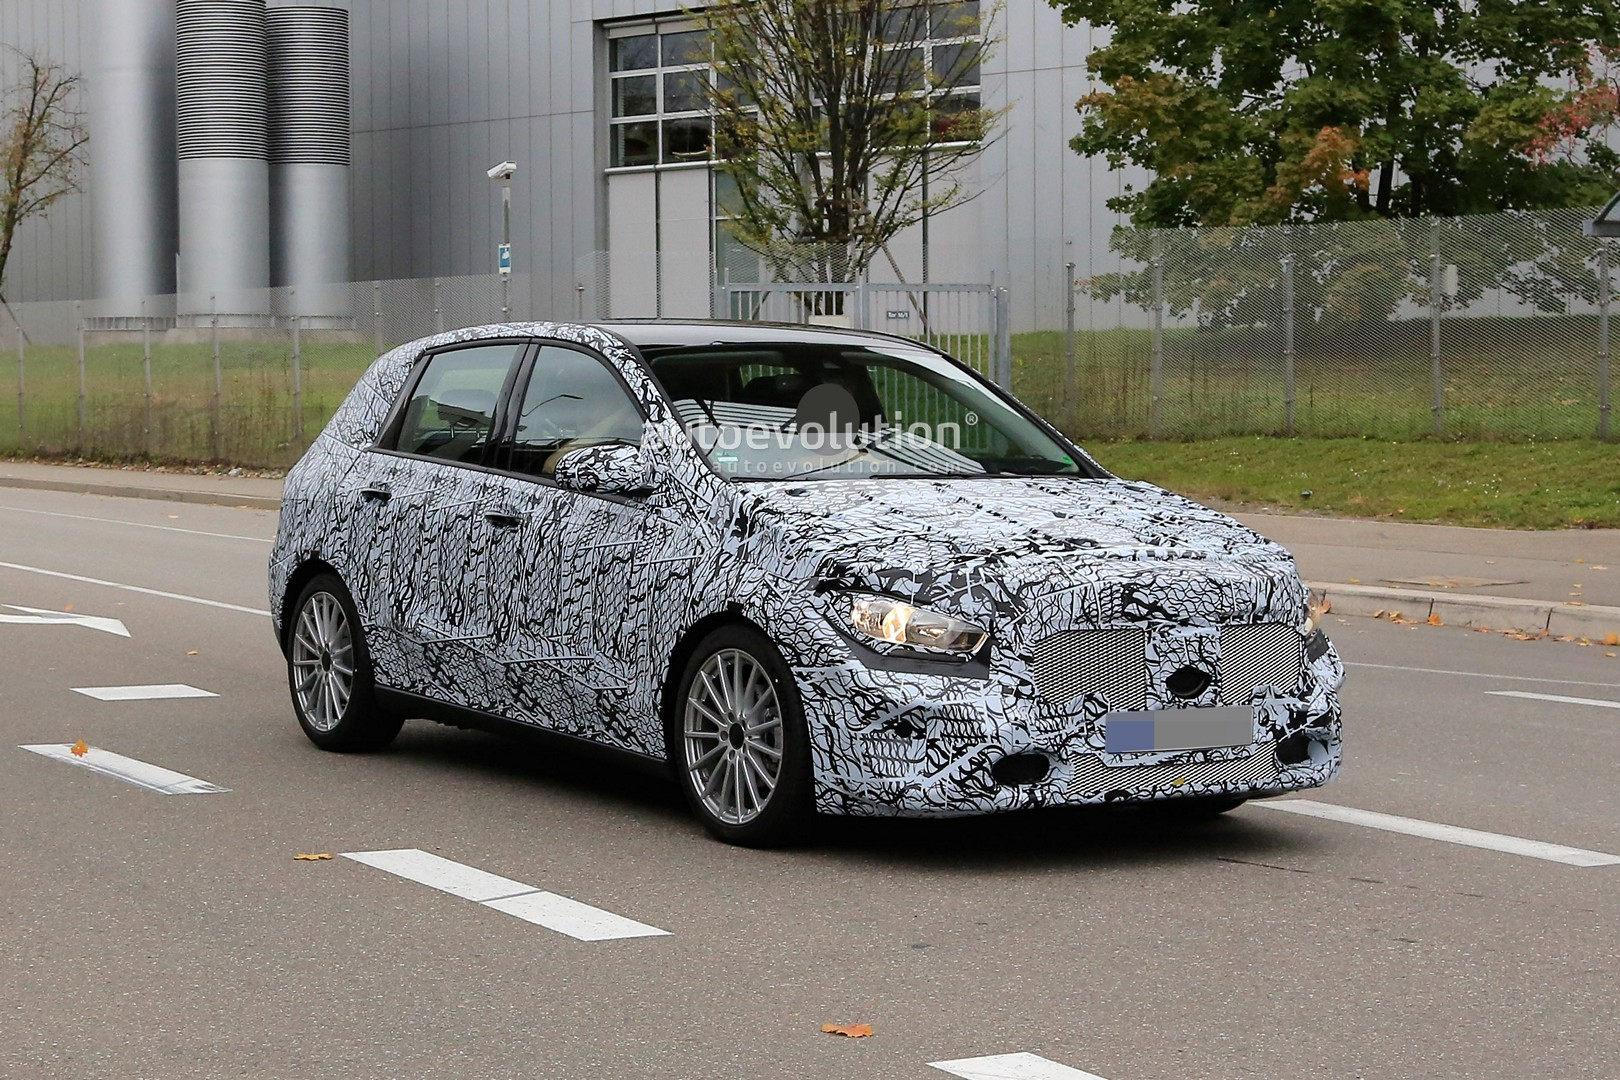 spyshots  2019 mercedes b-class is actually a major facelift